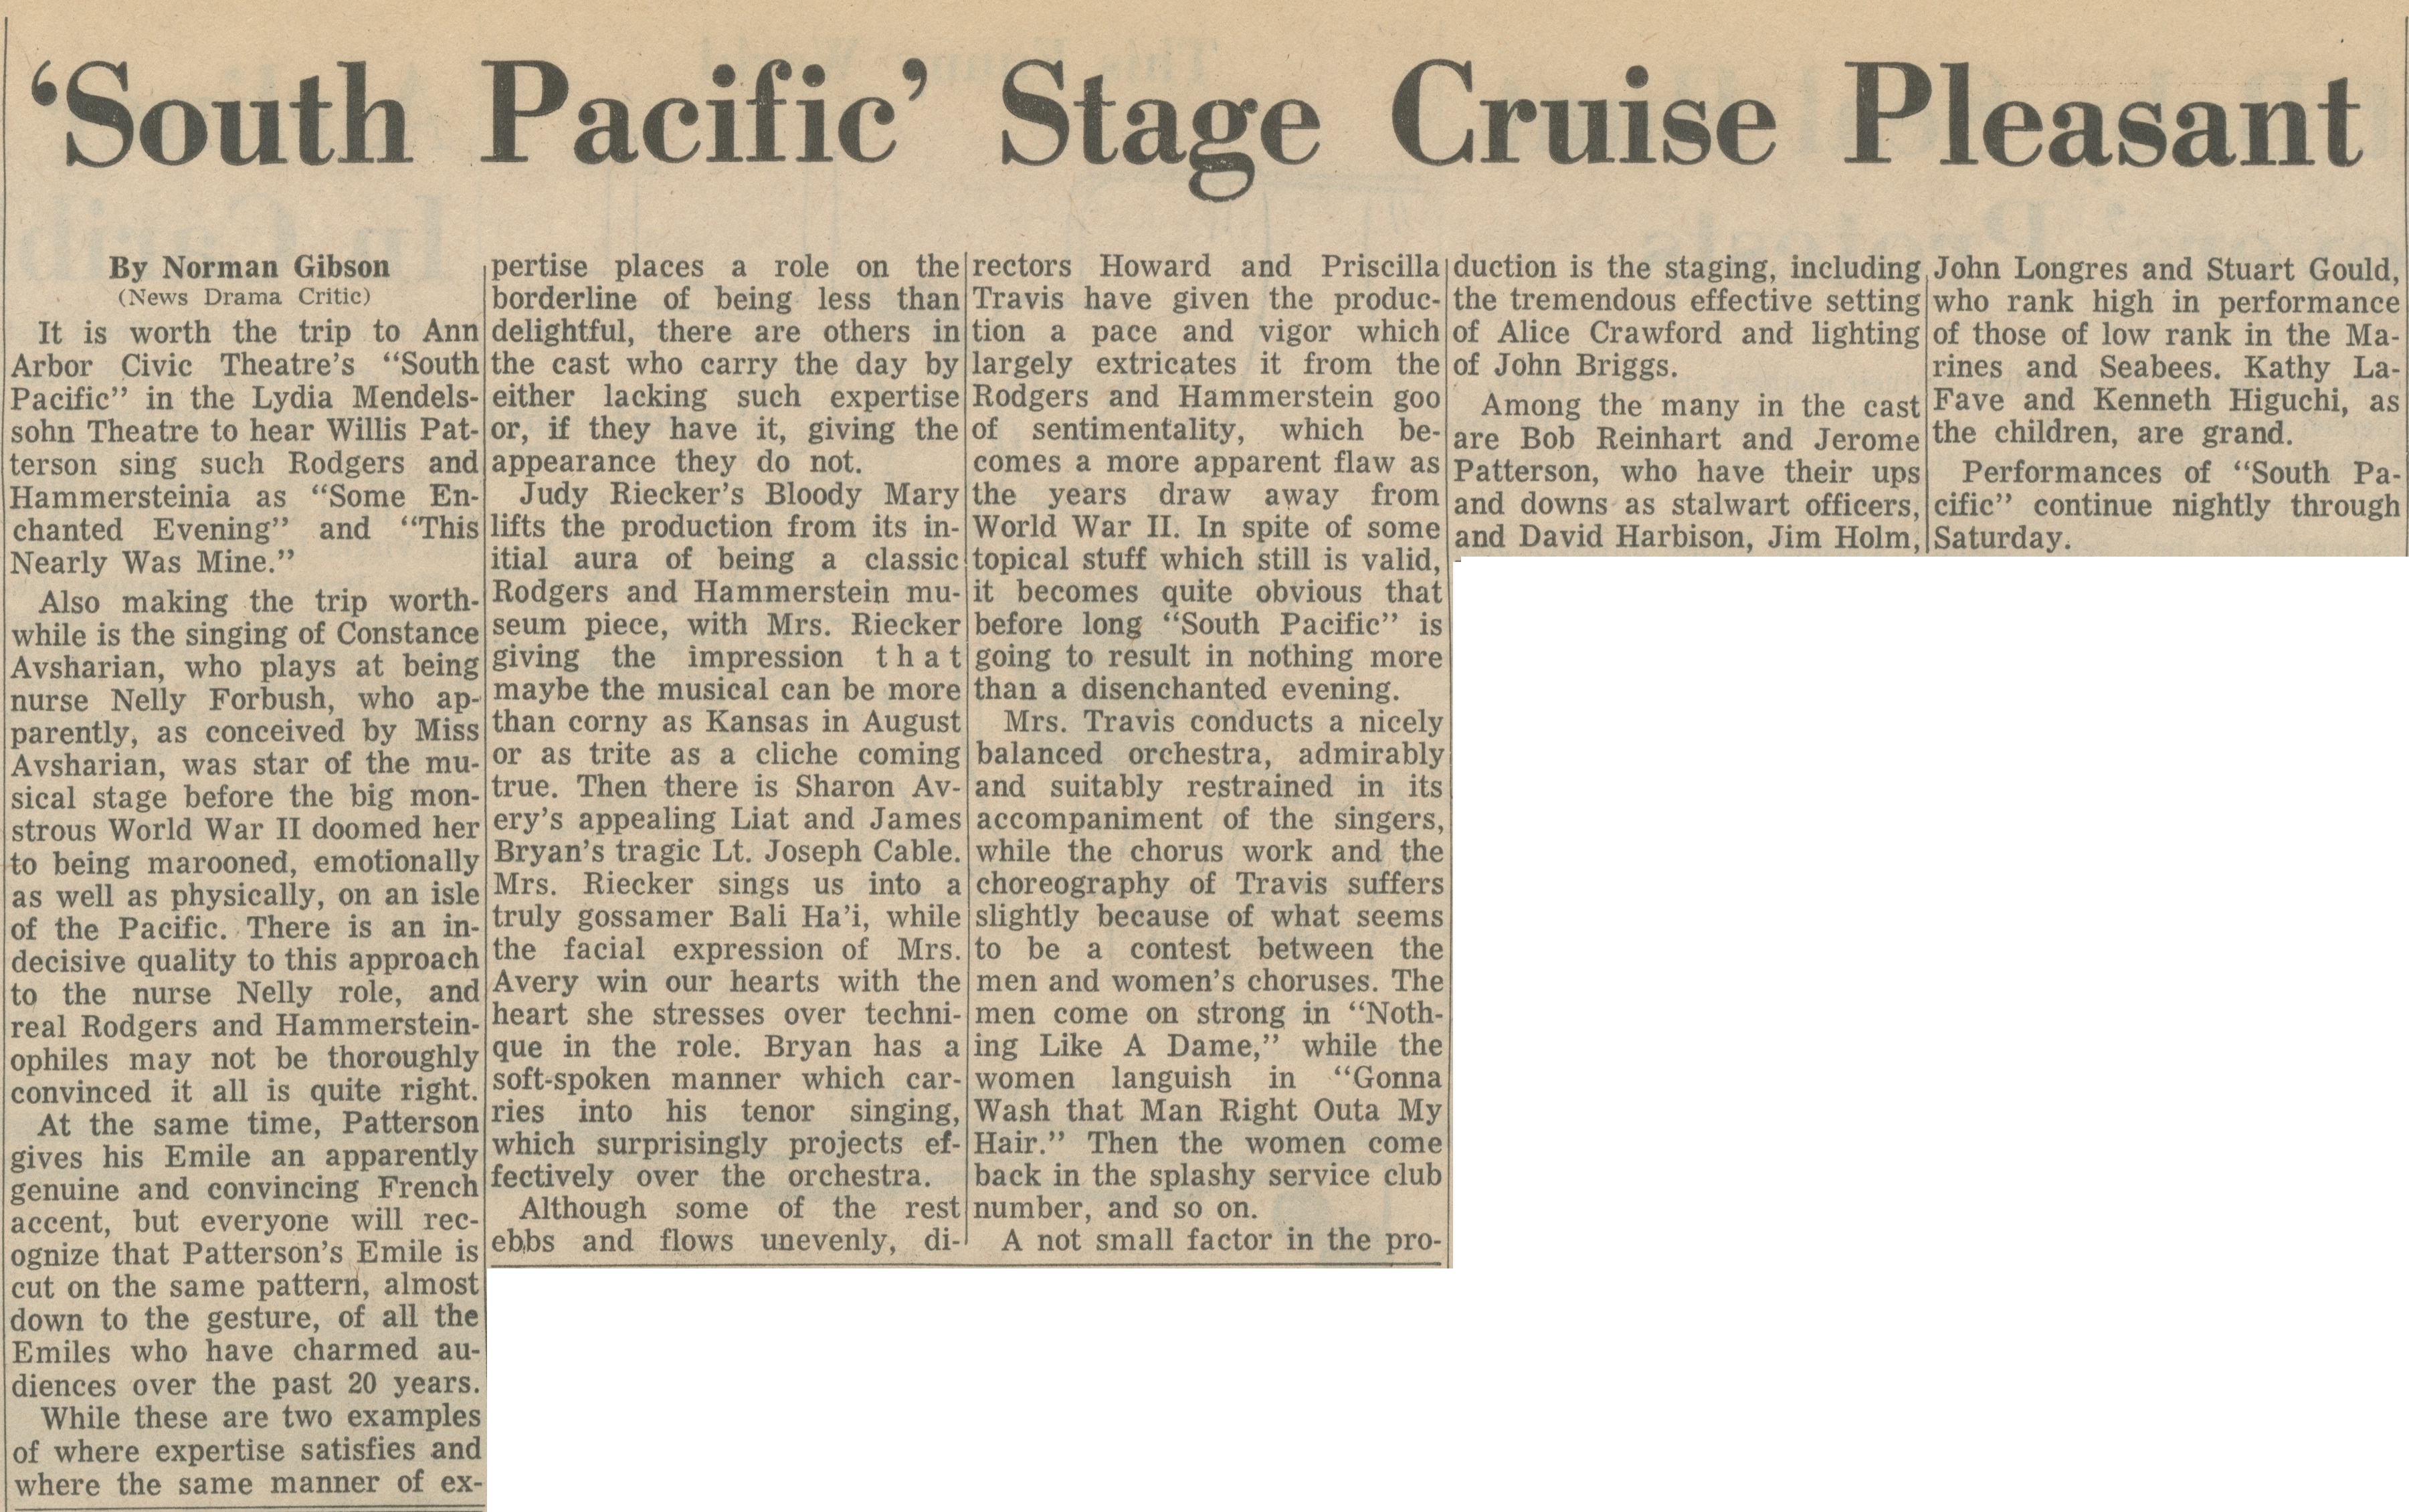 'South Pacific' Stage Cruise Pleasant image